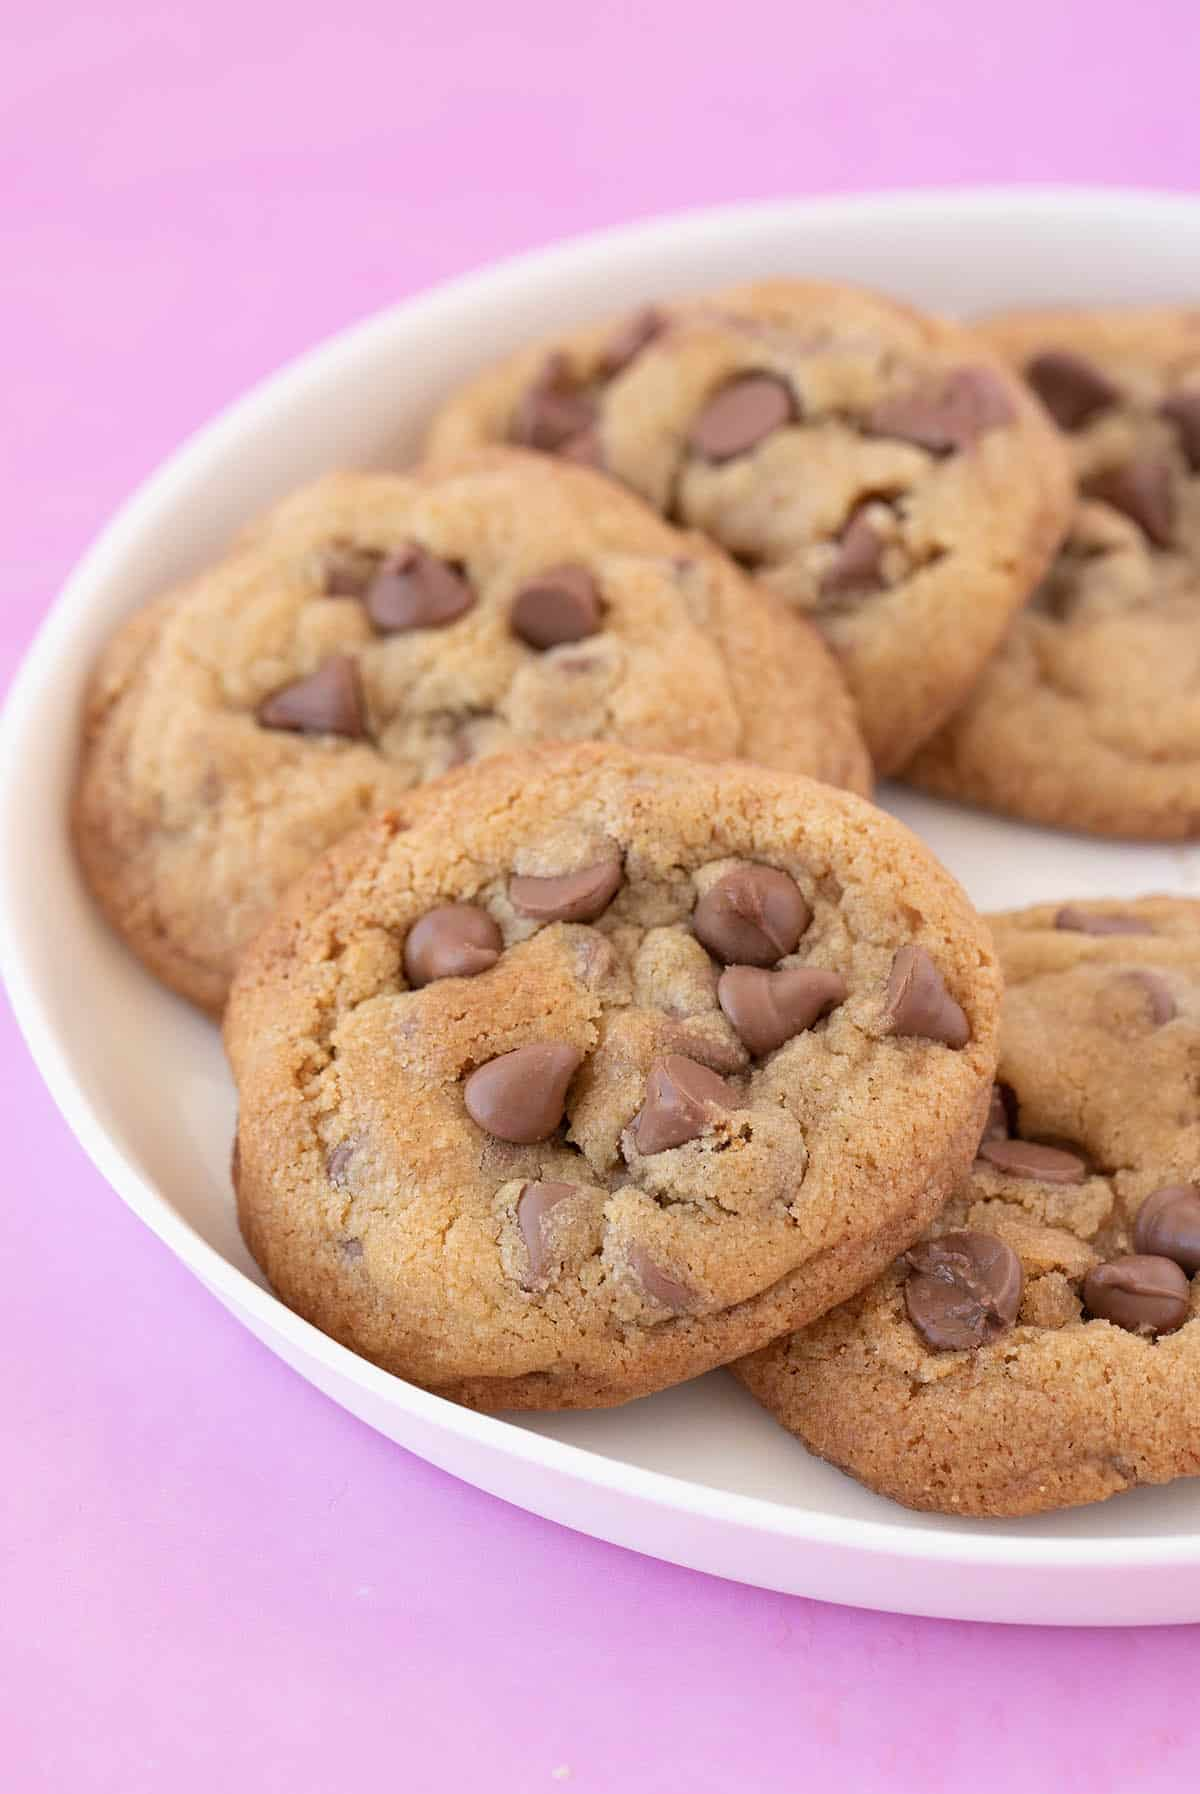 A white plate filled with chocolate chip cookies